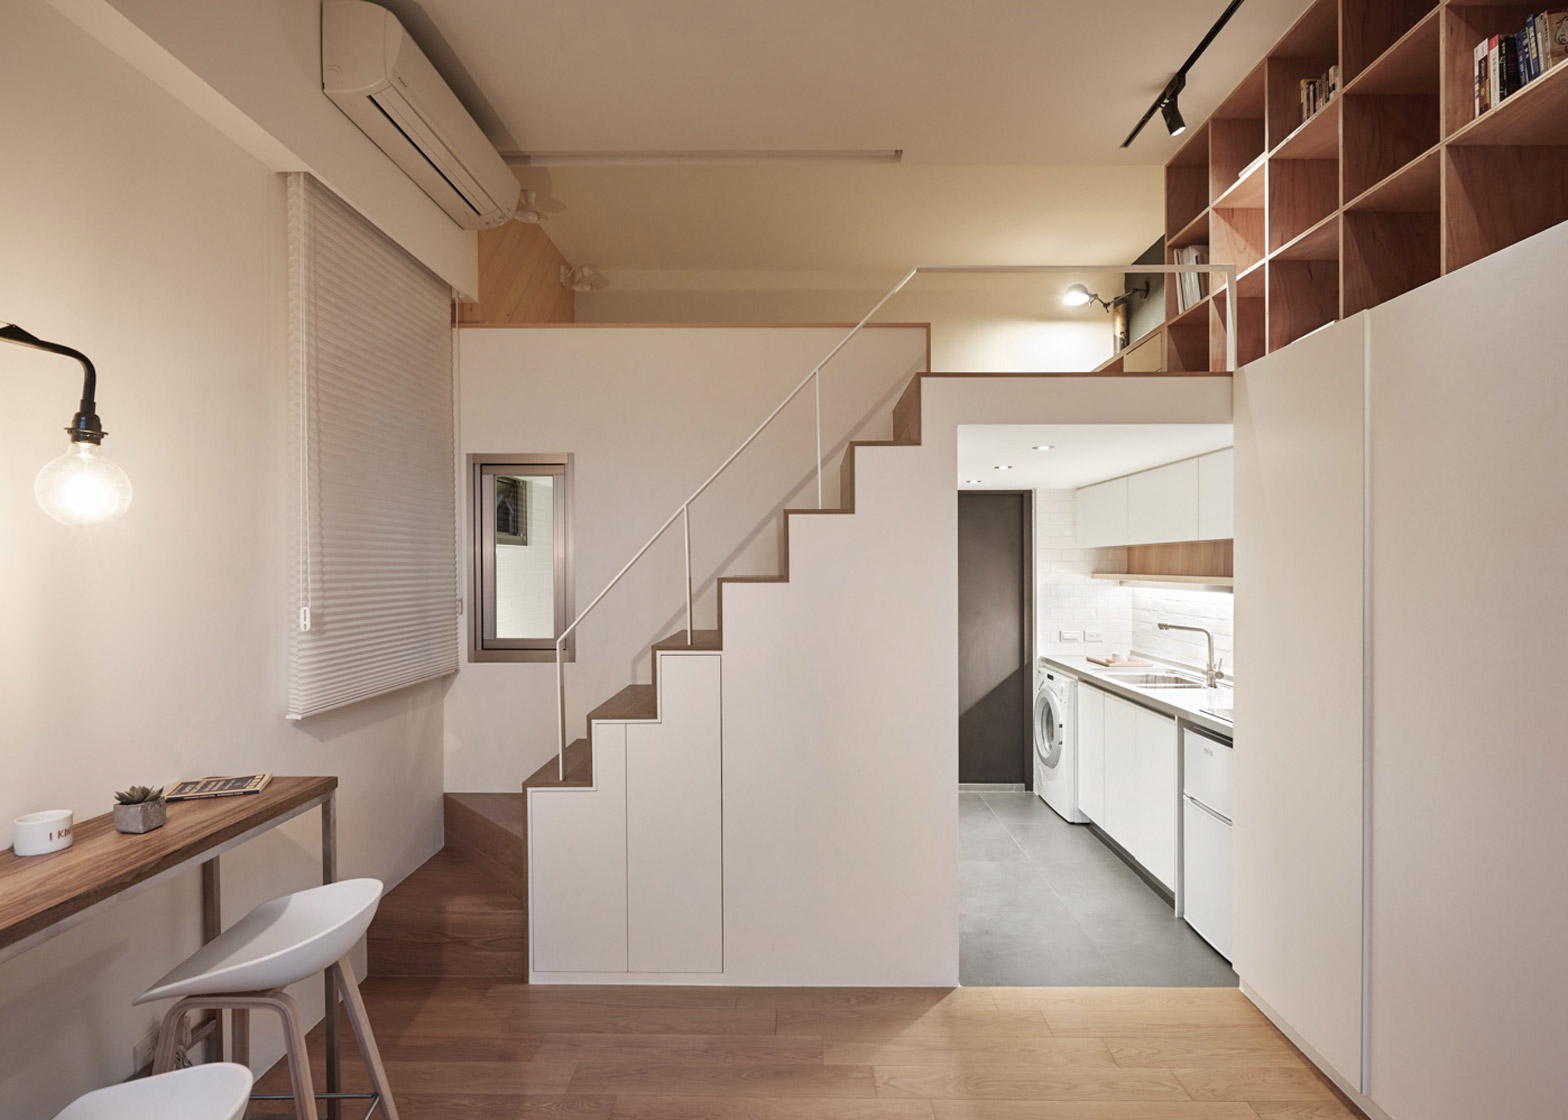 Micro apartment maximizes its tiny footprint - 9Homes